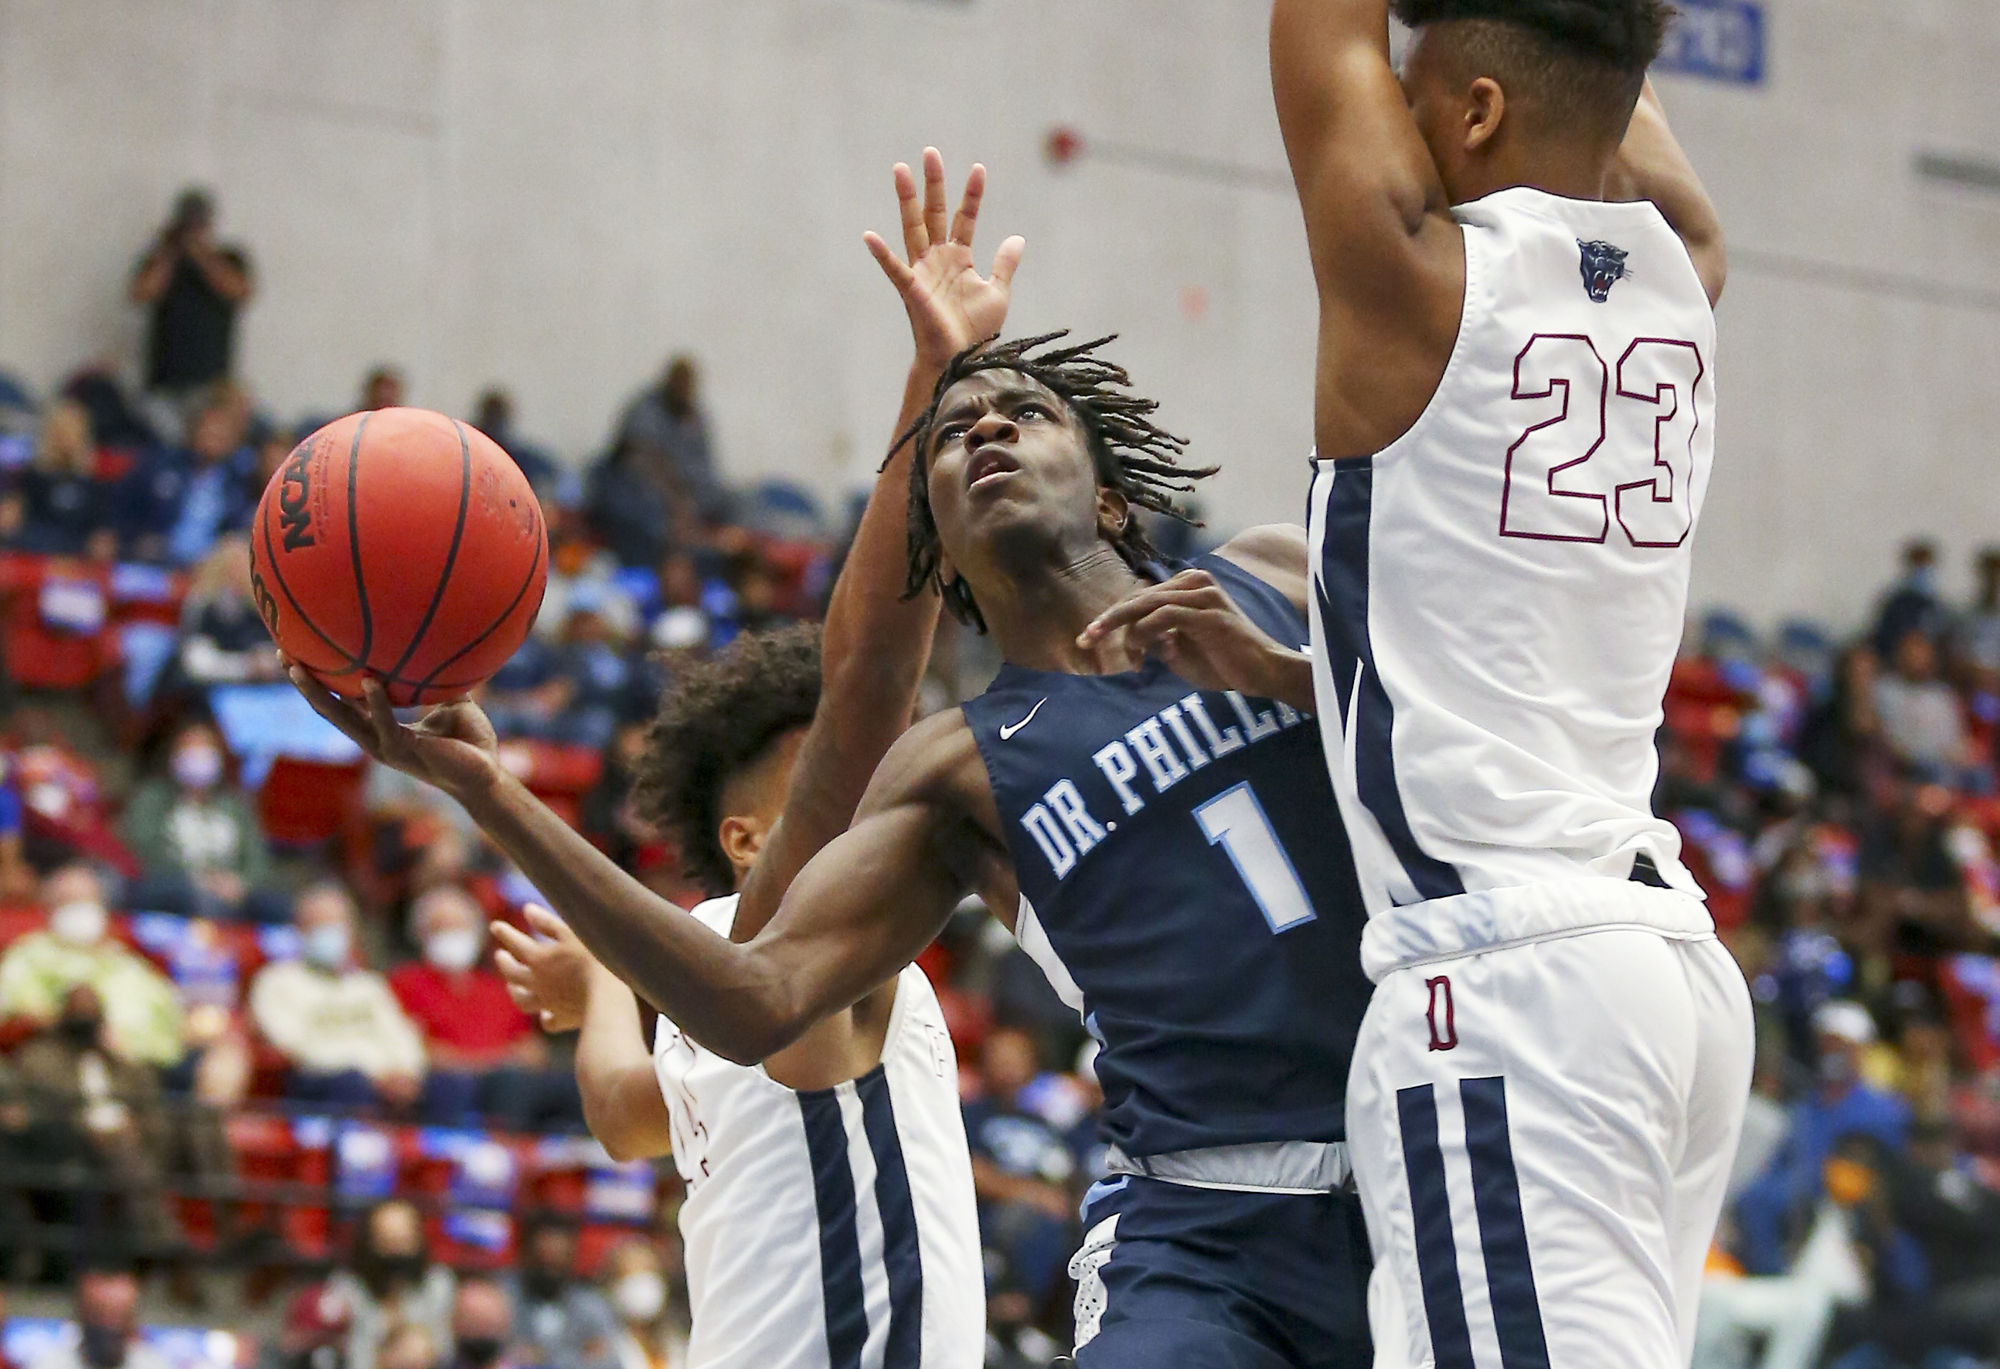 Shooting guard receives an Illini offer